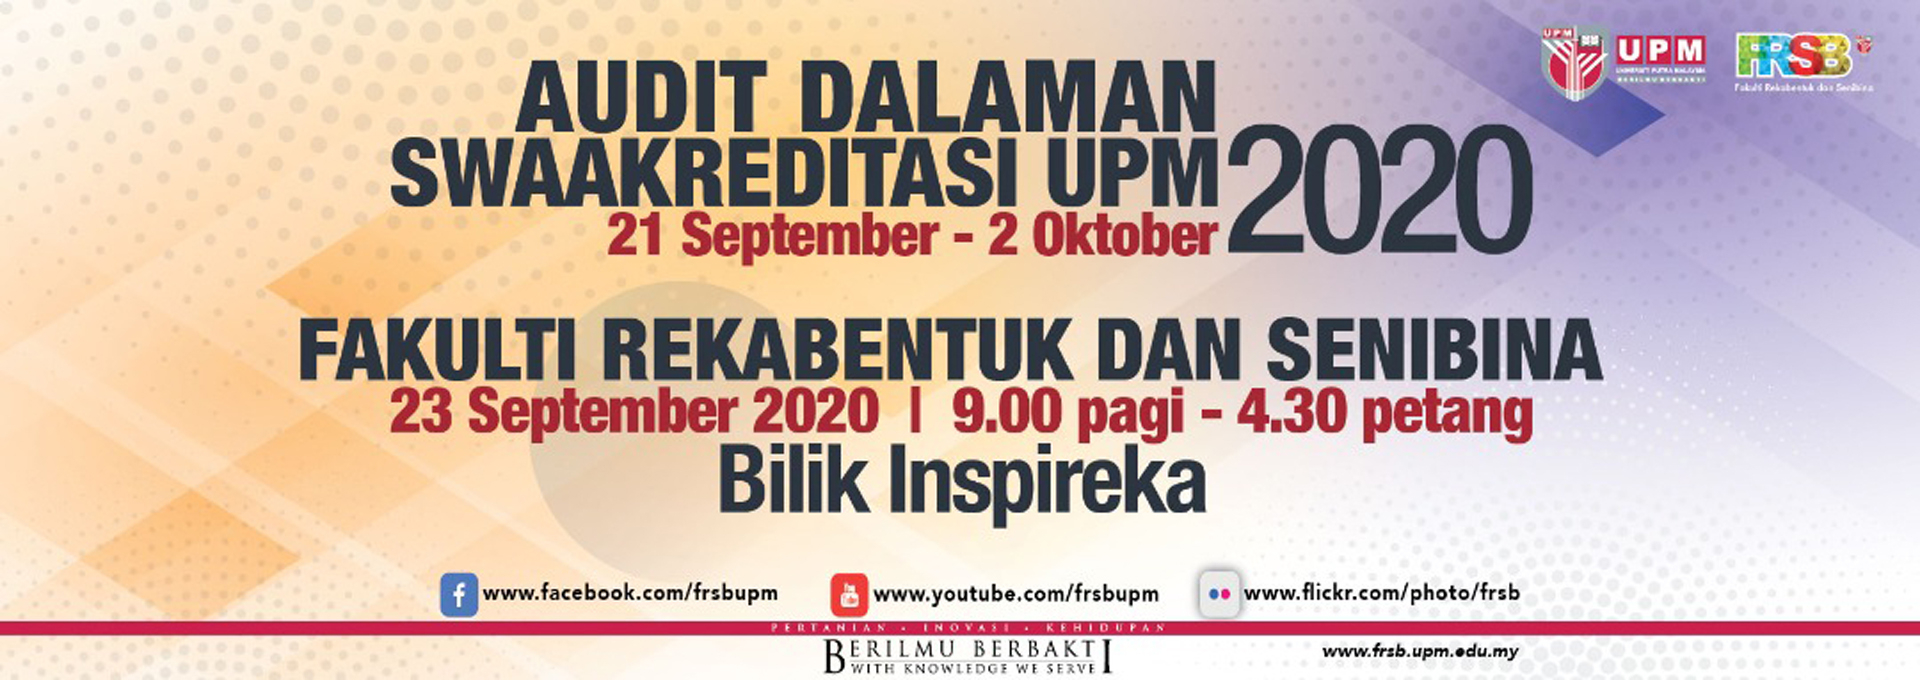 UPM Accreditation Internal Audit 2020